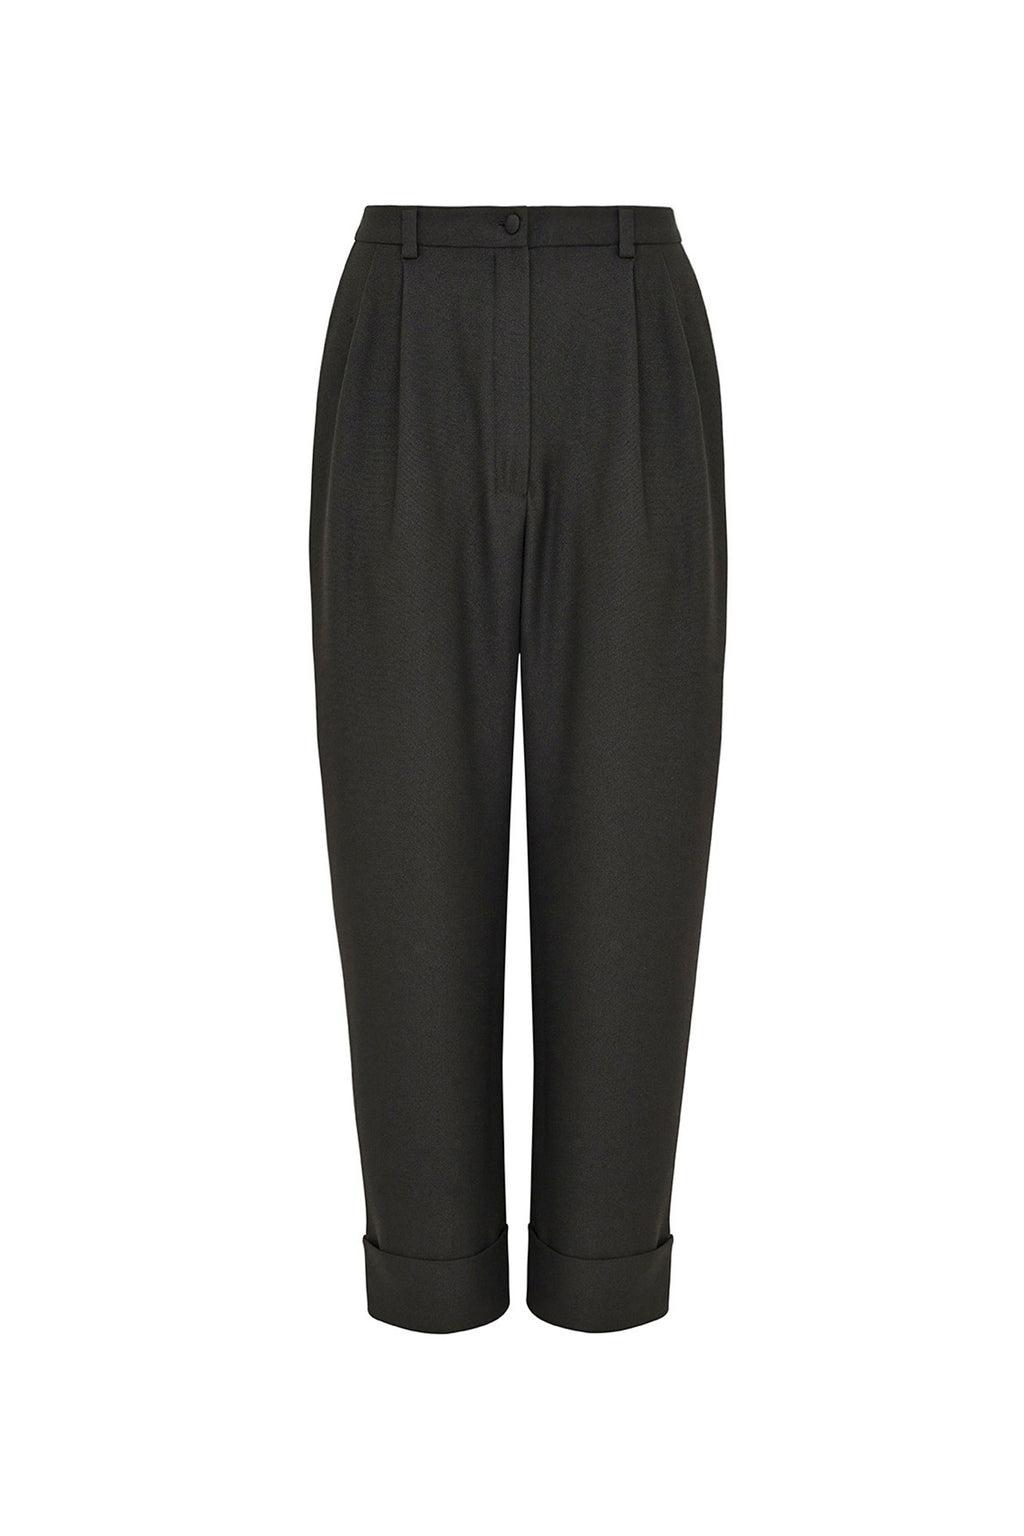 The Black Boyfriend Pants